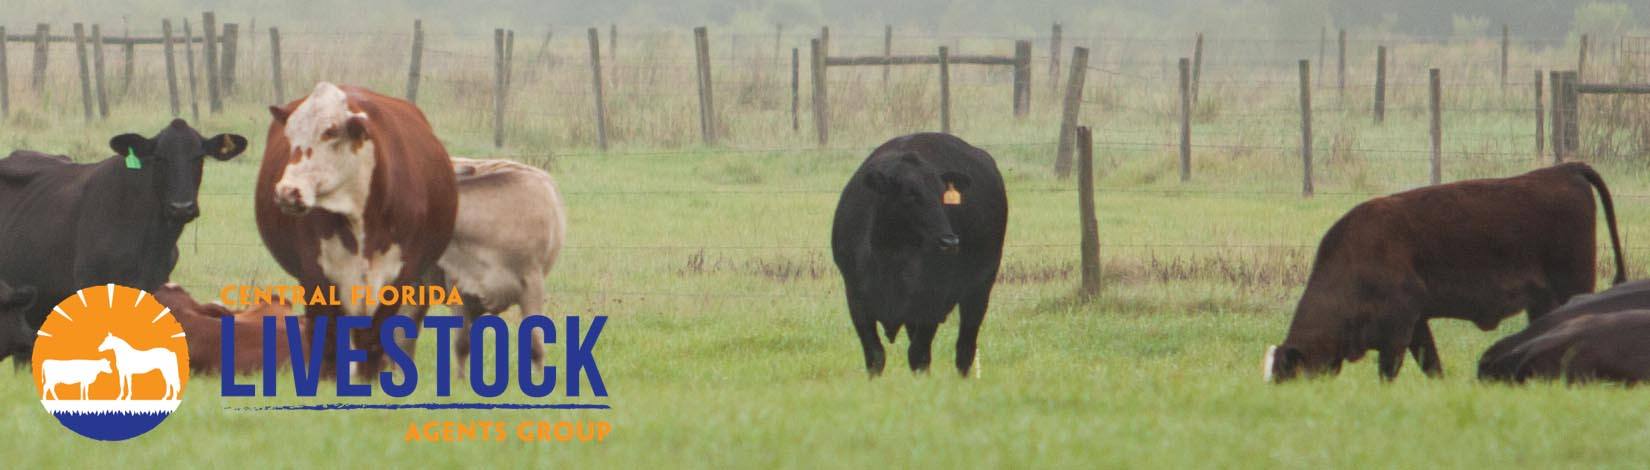 Small Cattle Farm Header 37